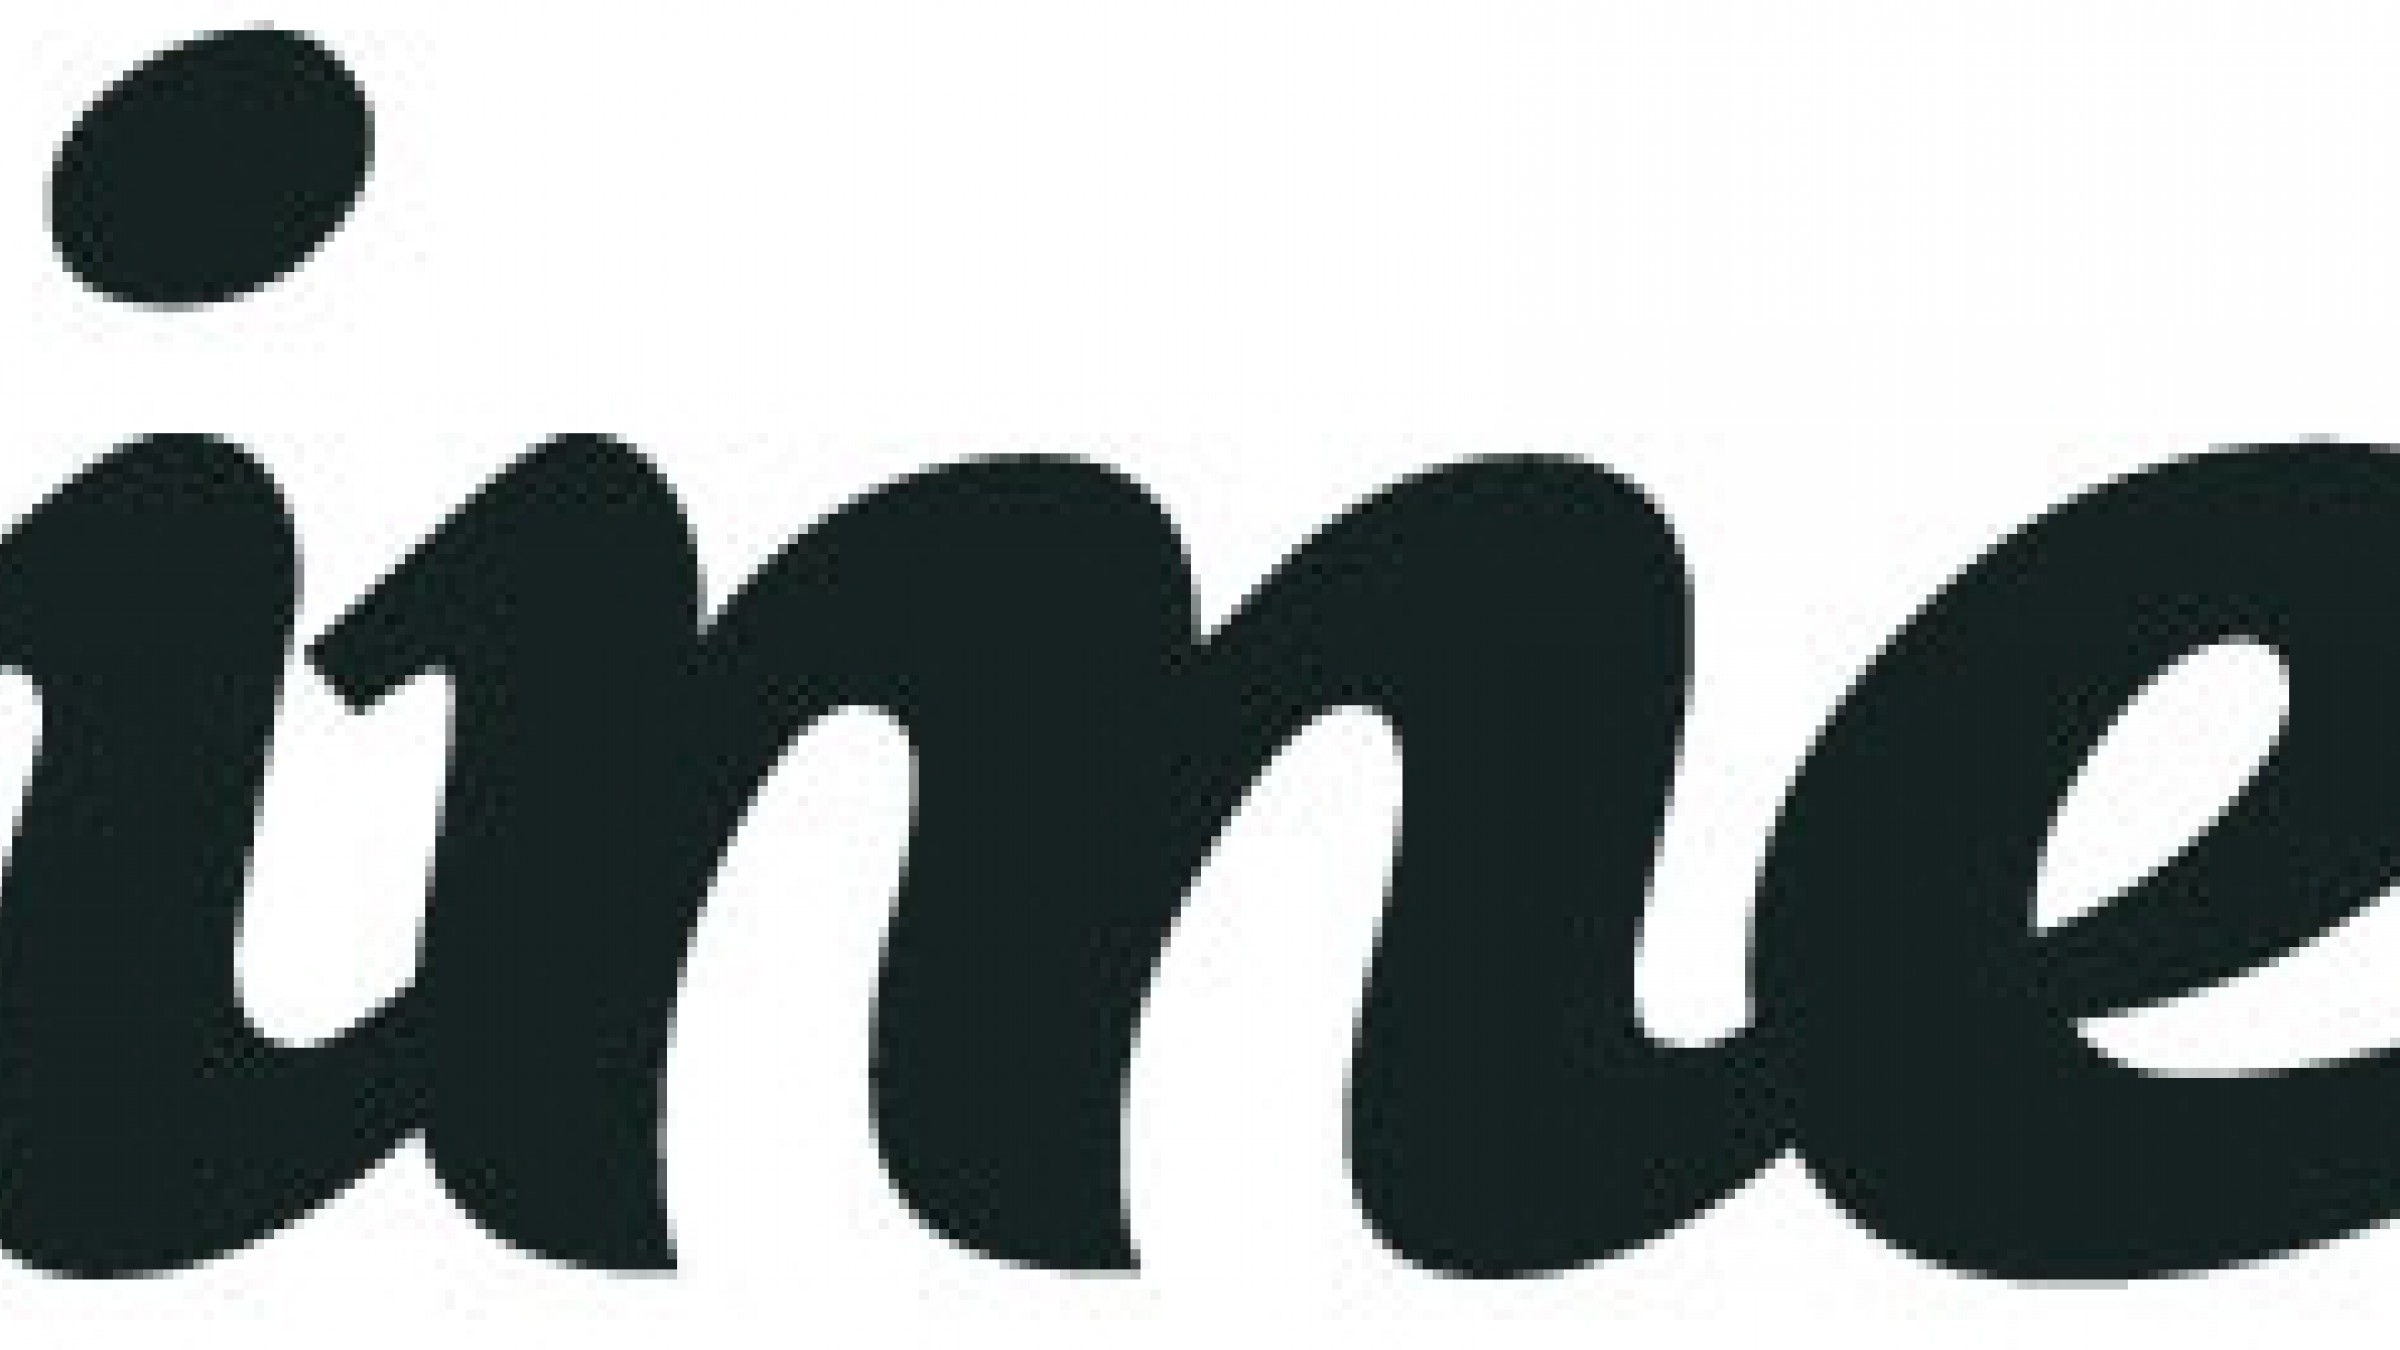 Vimeo Updates Copyright Match Policy, Won't Scan Private